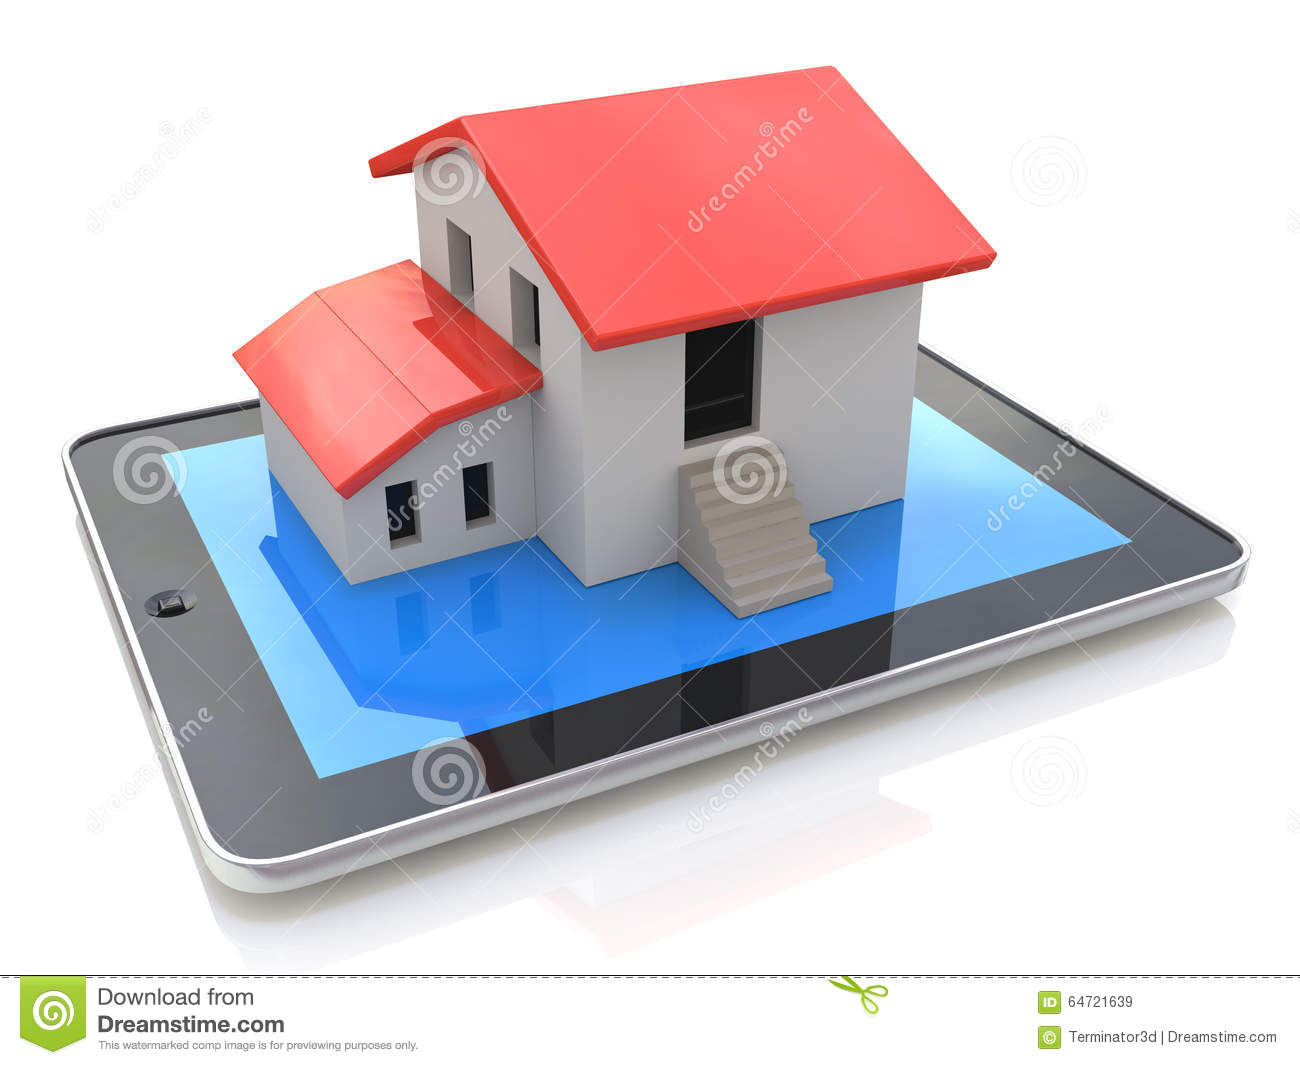 Tablet pc with simple house model on display 3d illustration stock illustration